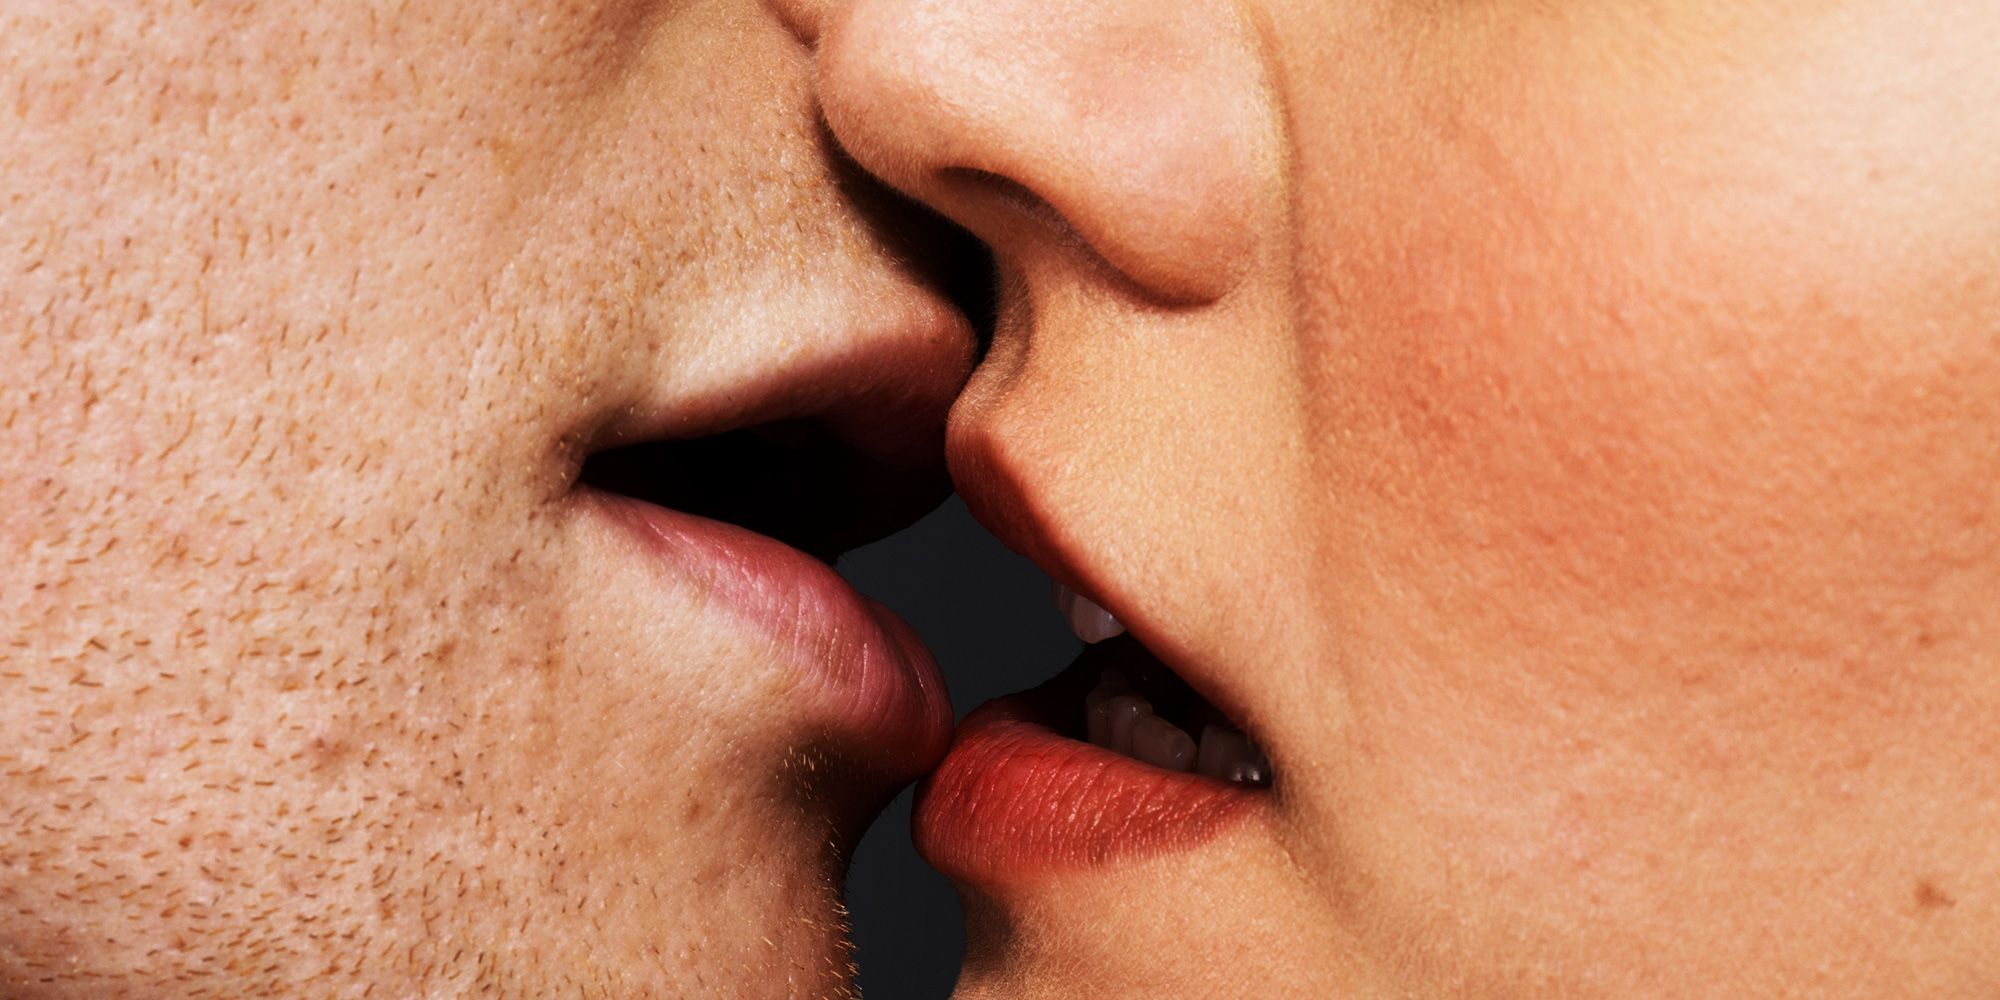 Can you get hsv2 from kissing